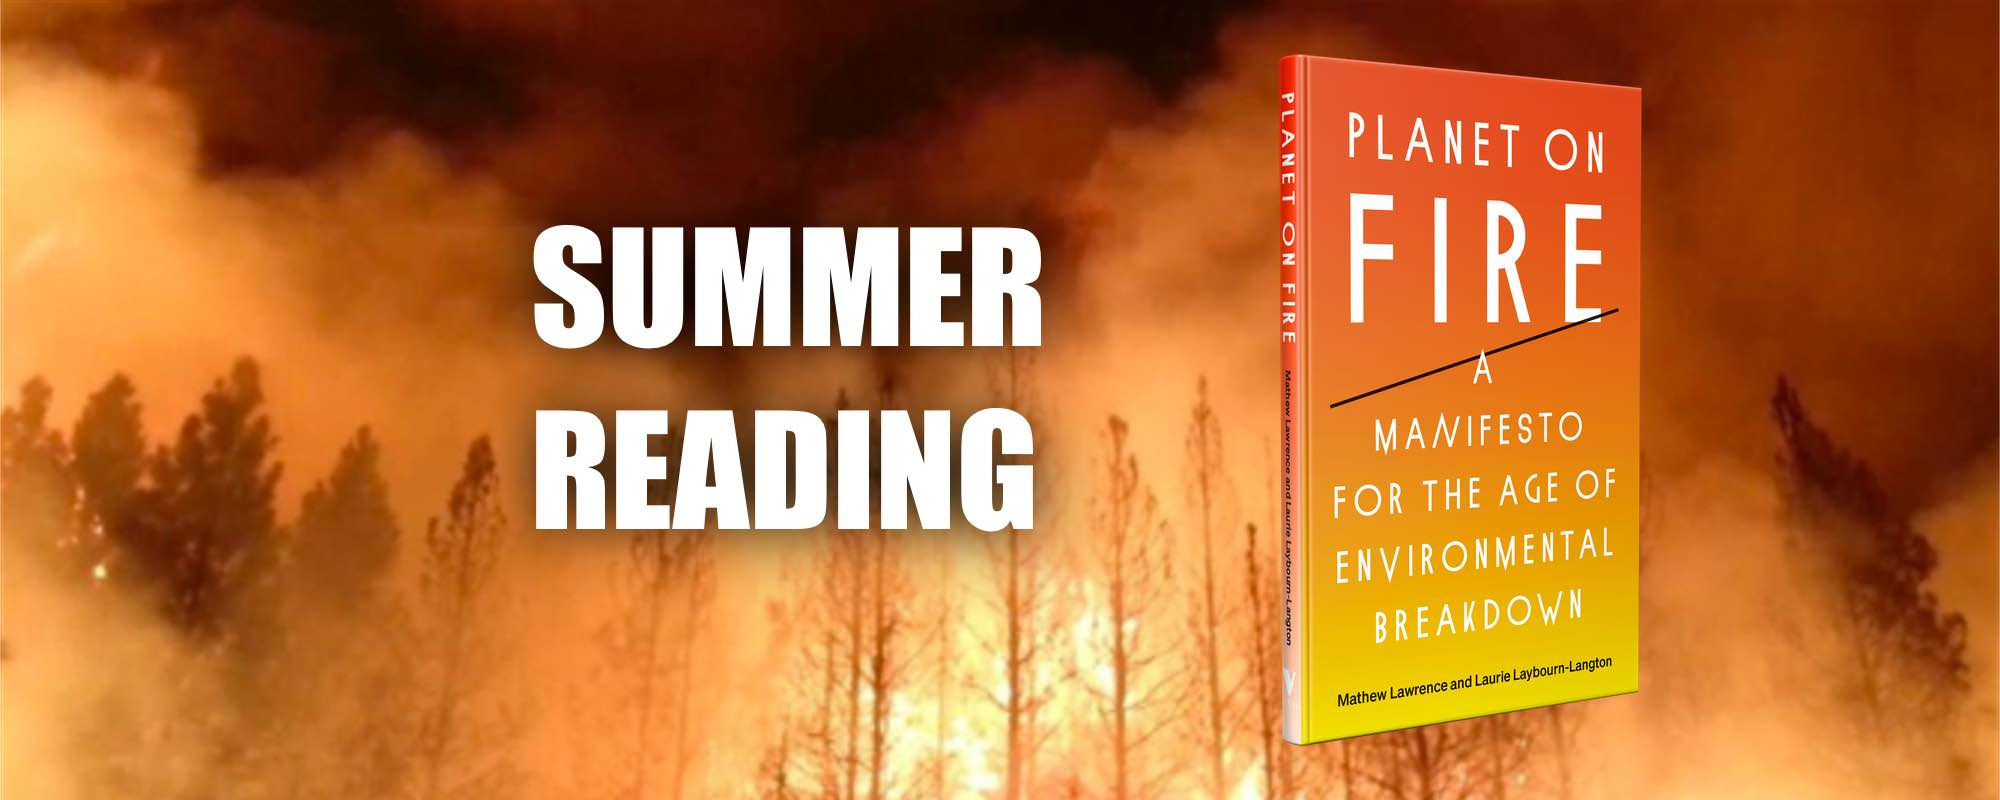 Summer Reading: Planet on Fire A Manifesto for the Age of Environmental Breakdown